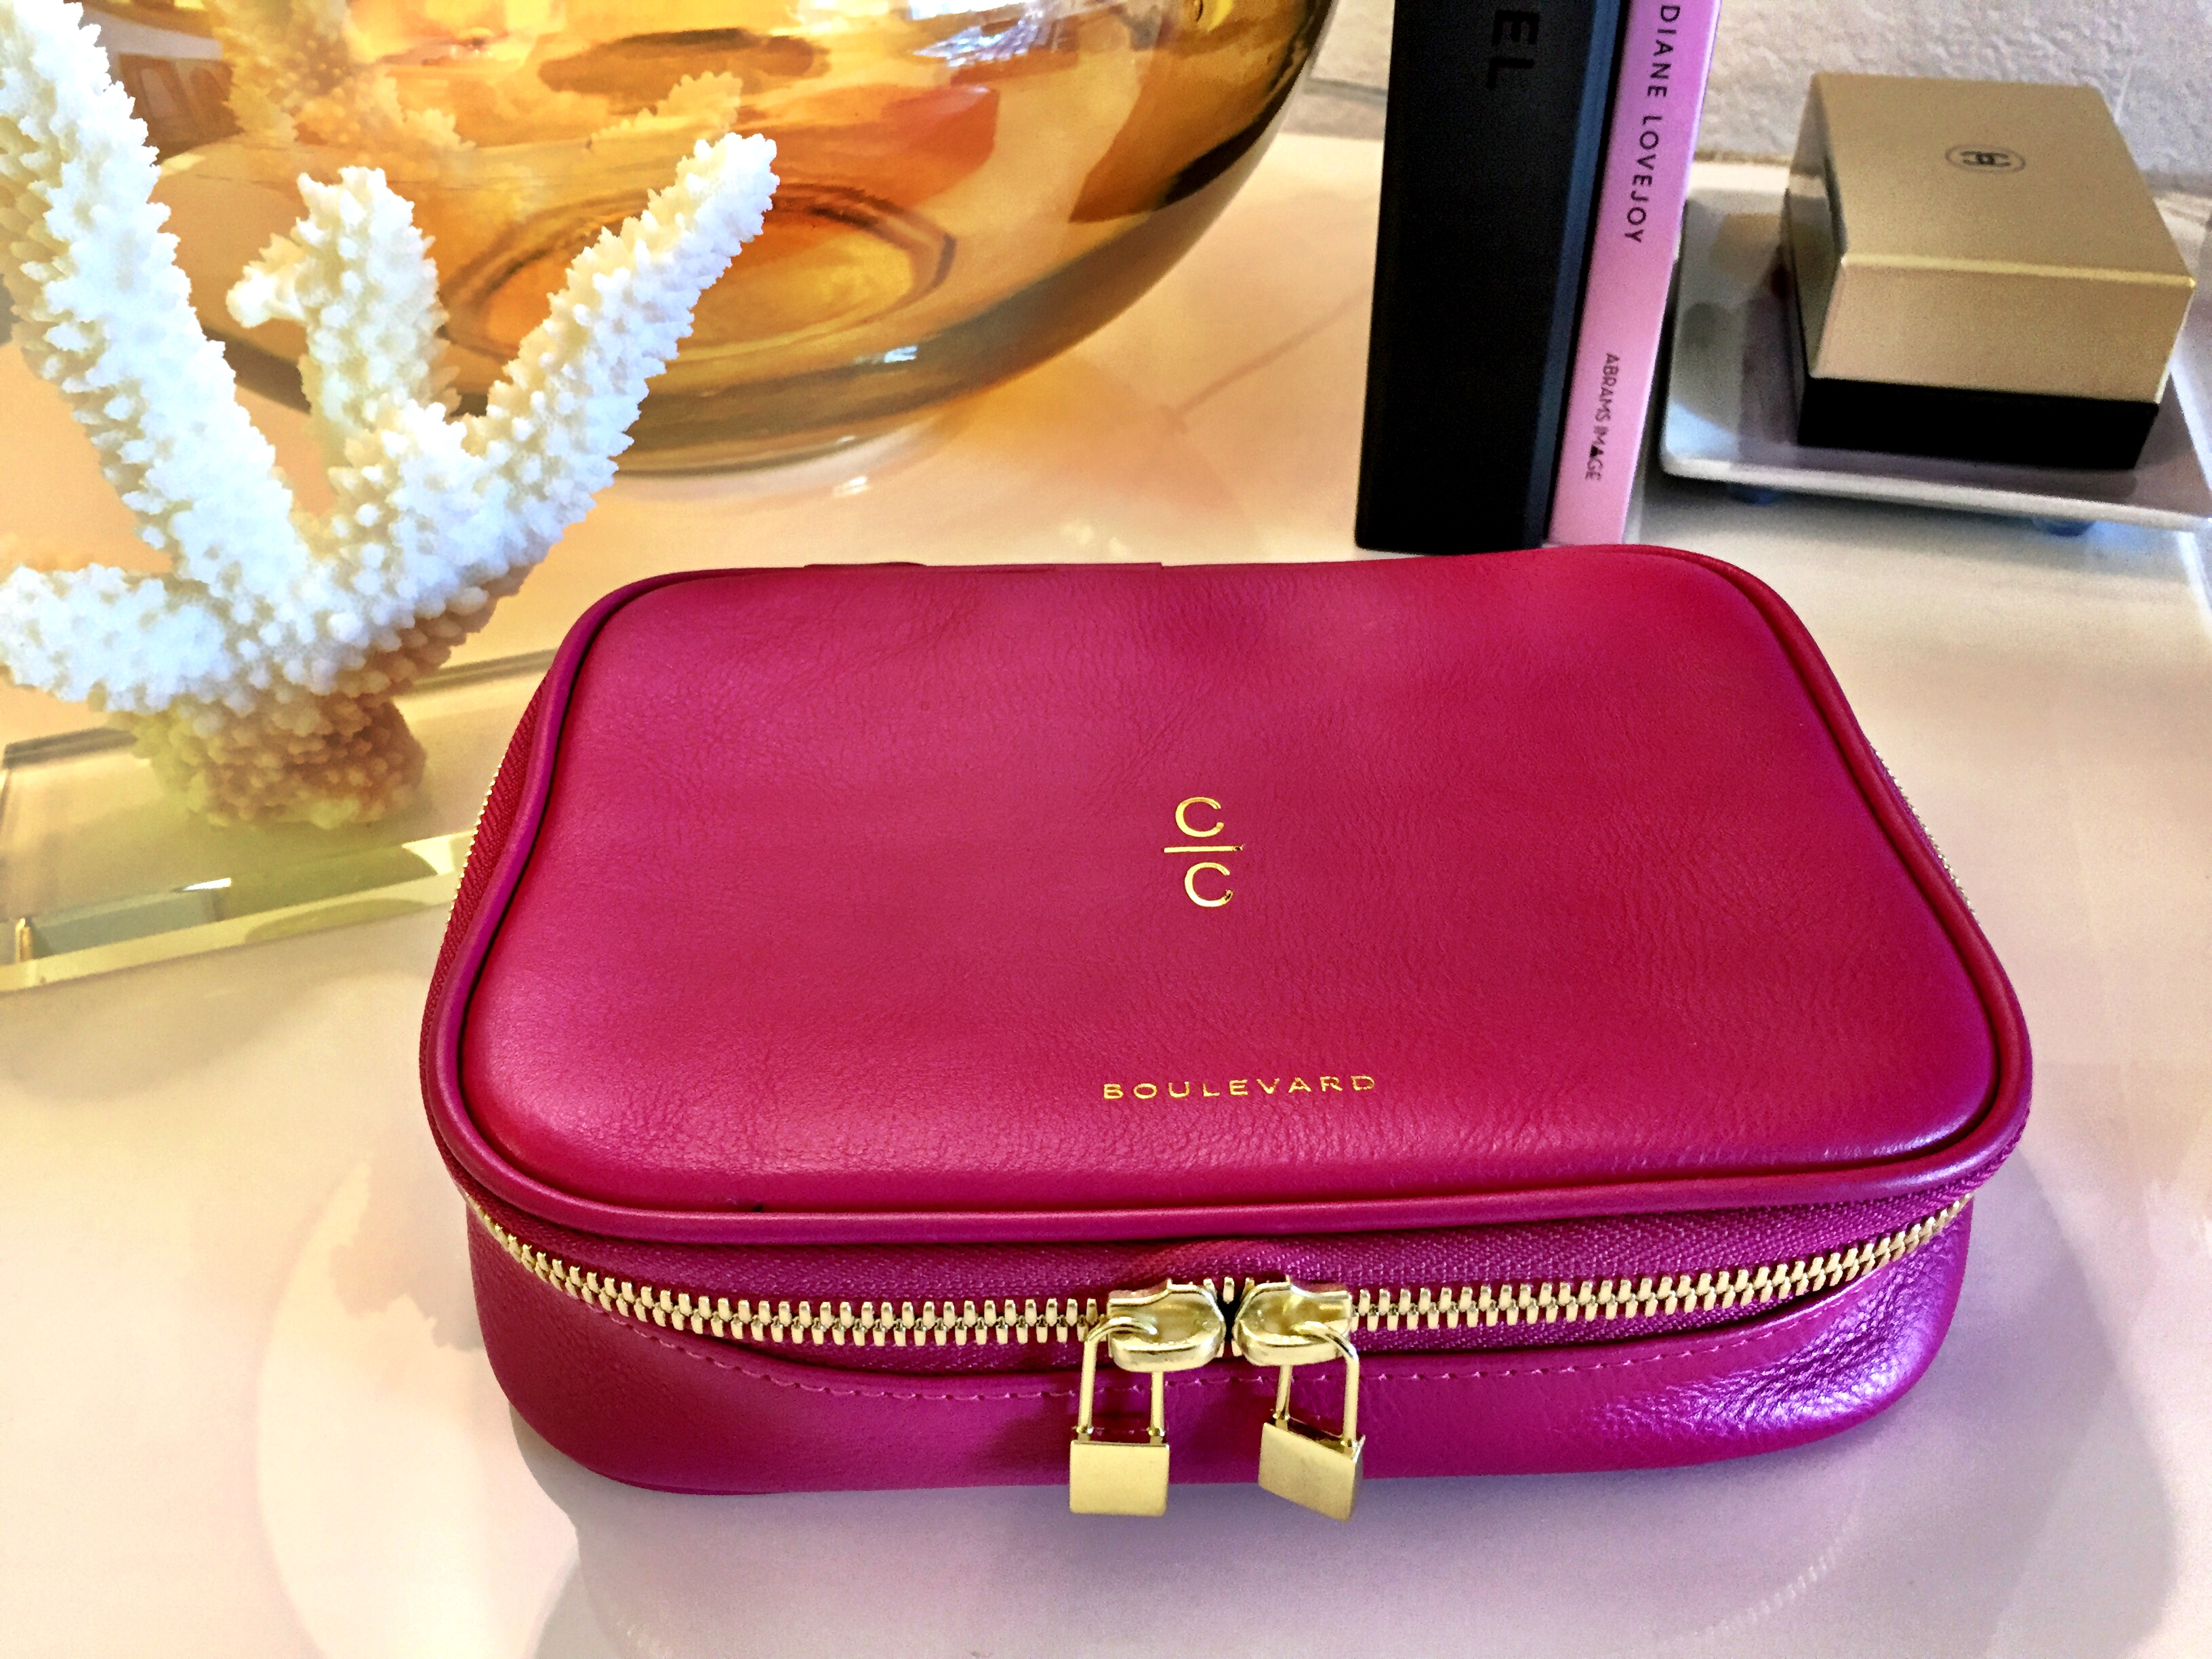 Isabella Jewelry Case by Boulevard